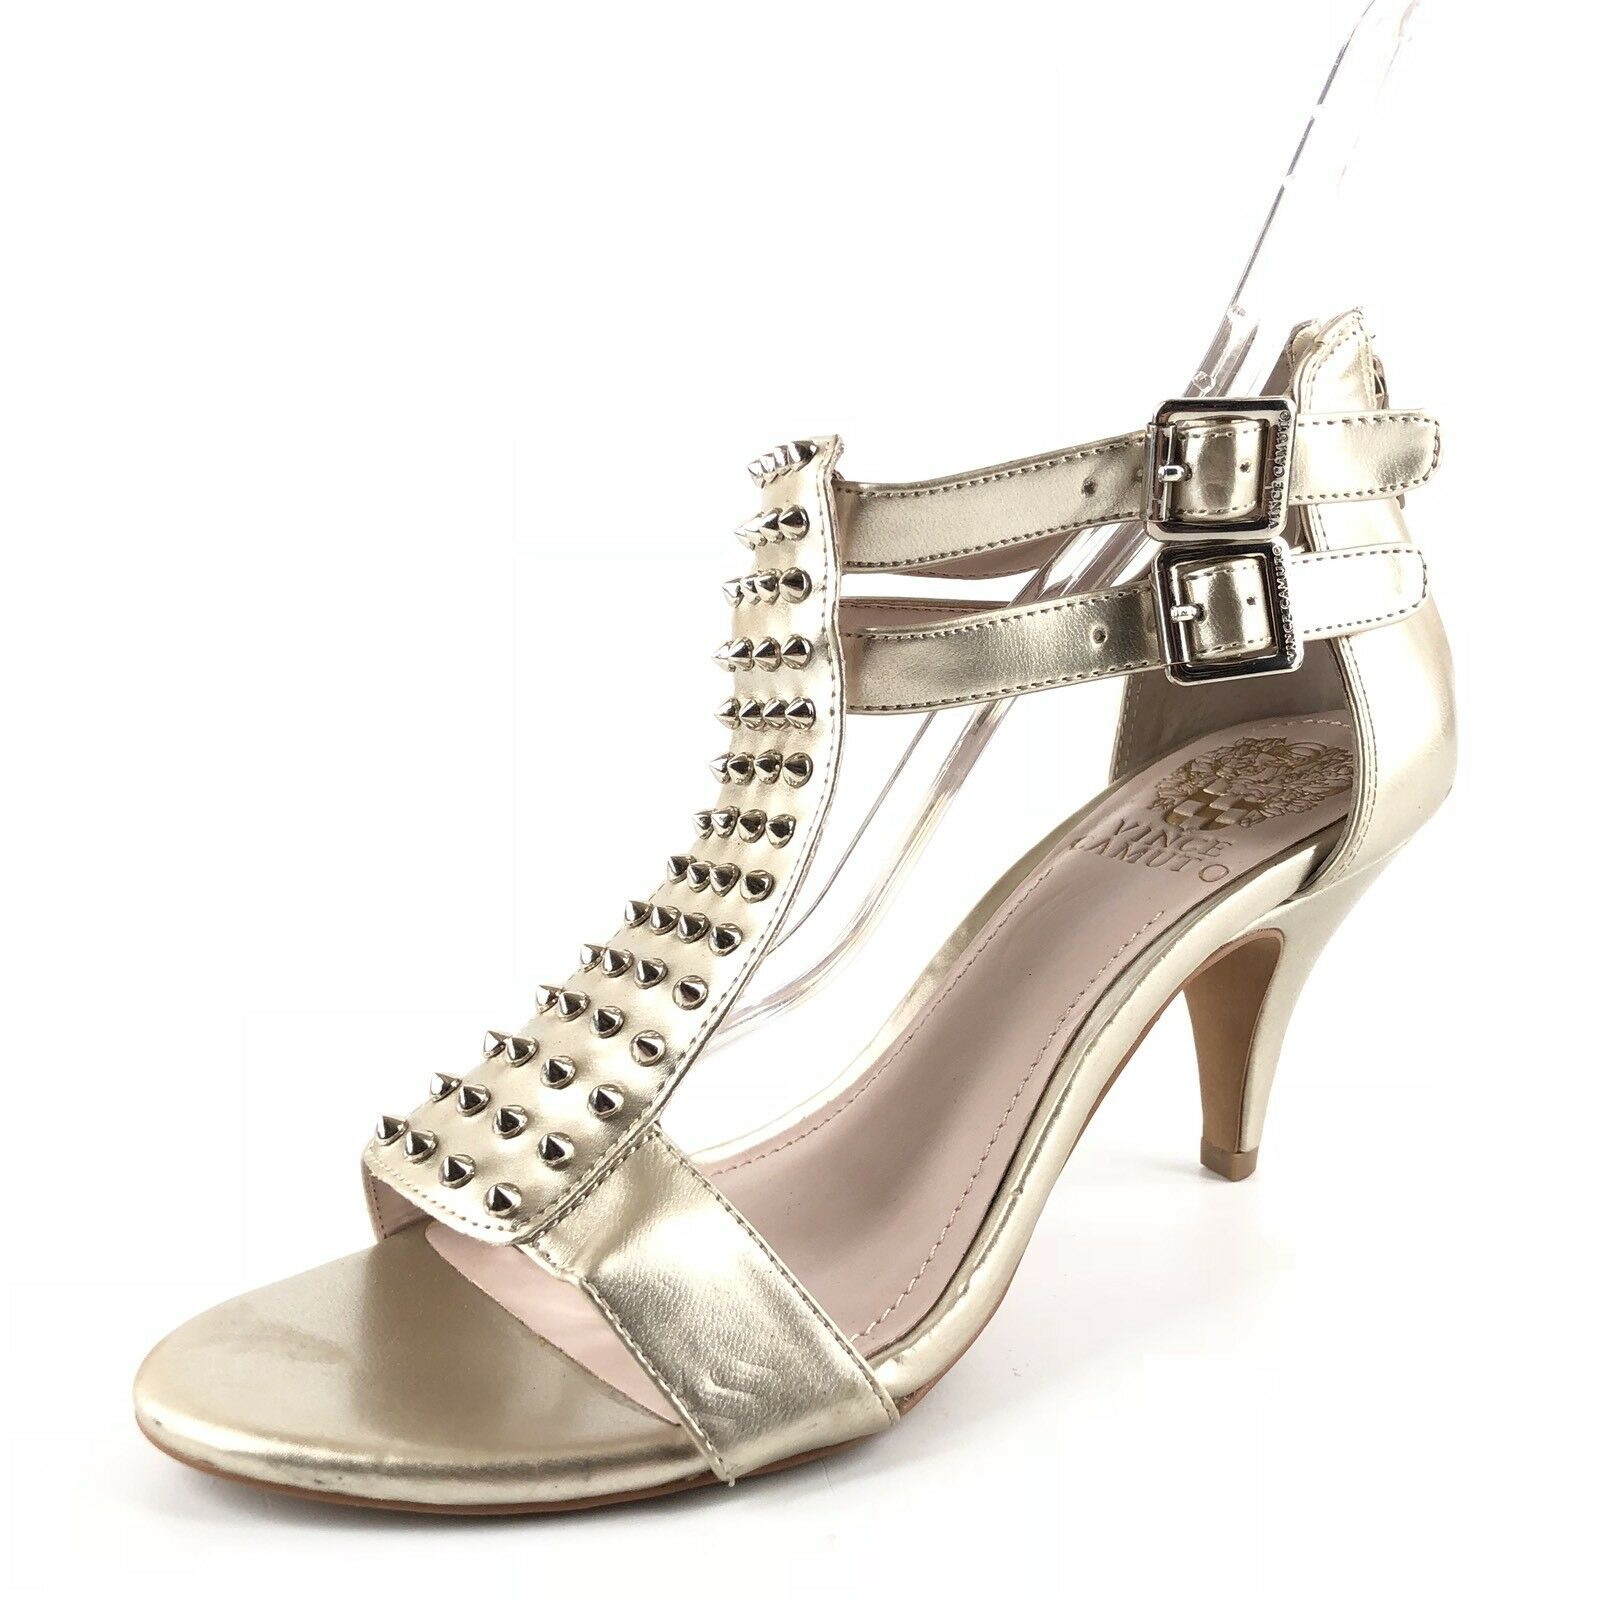 Vince Camuto Minter Platinum Leather Studded Open Toe Sandals Womens Size 6 M